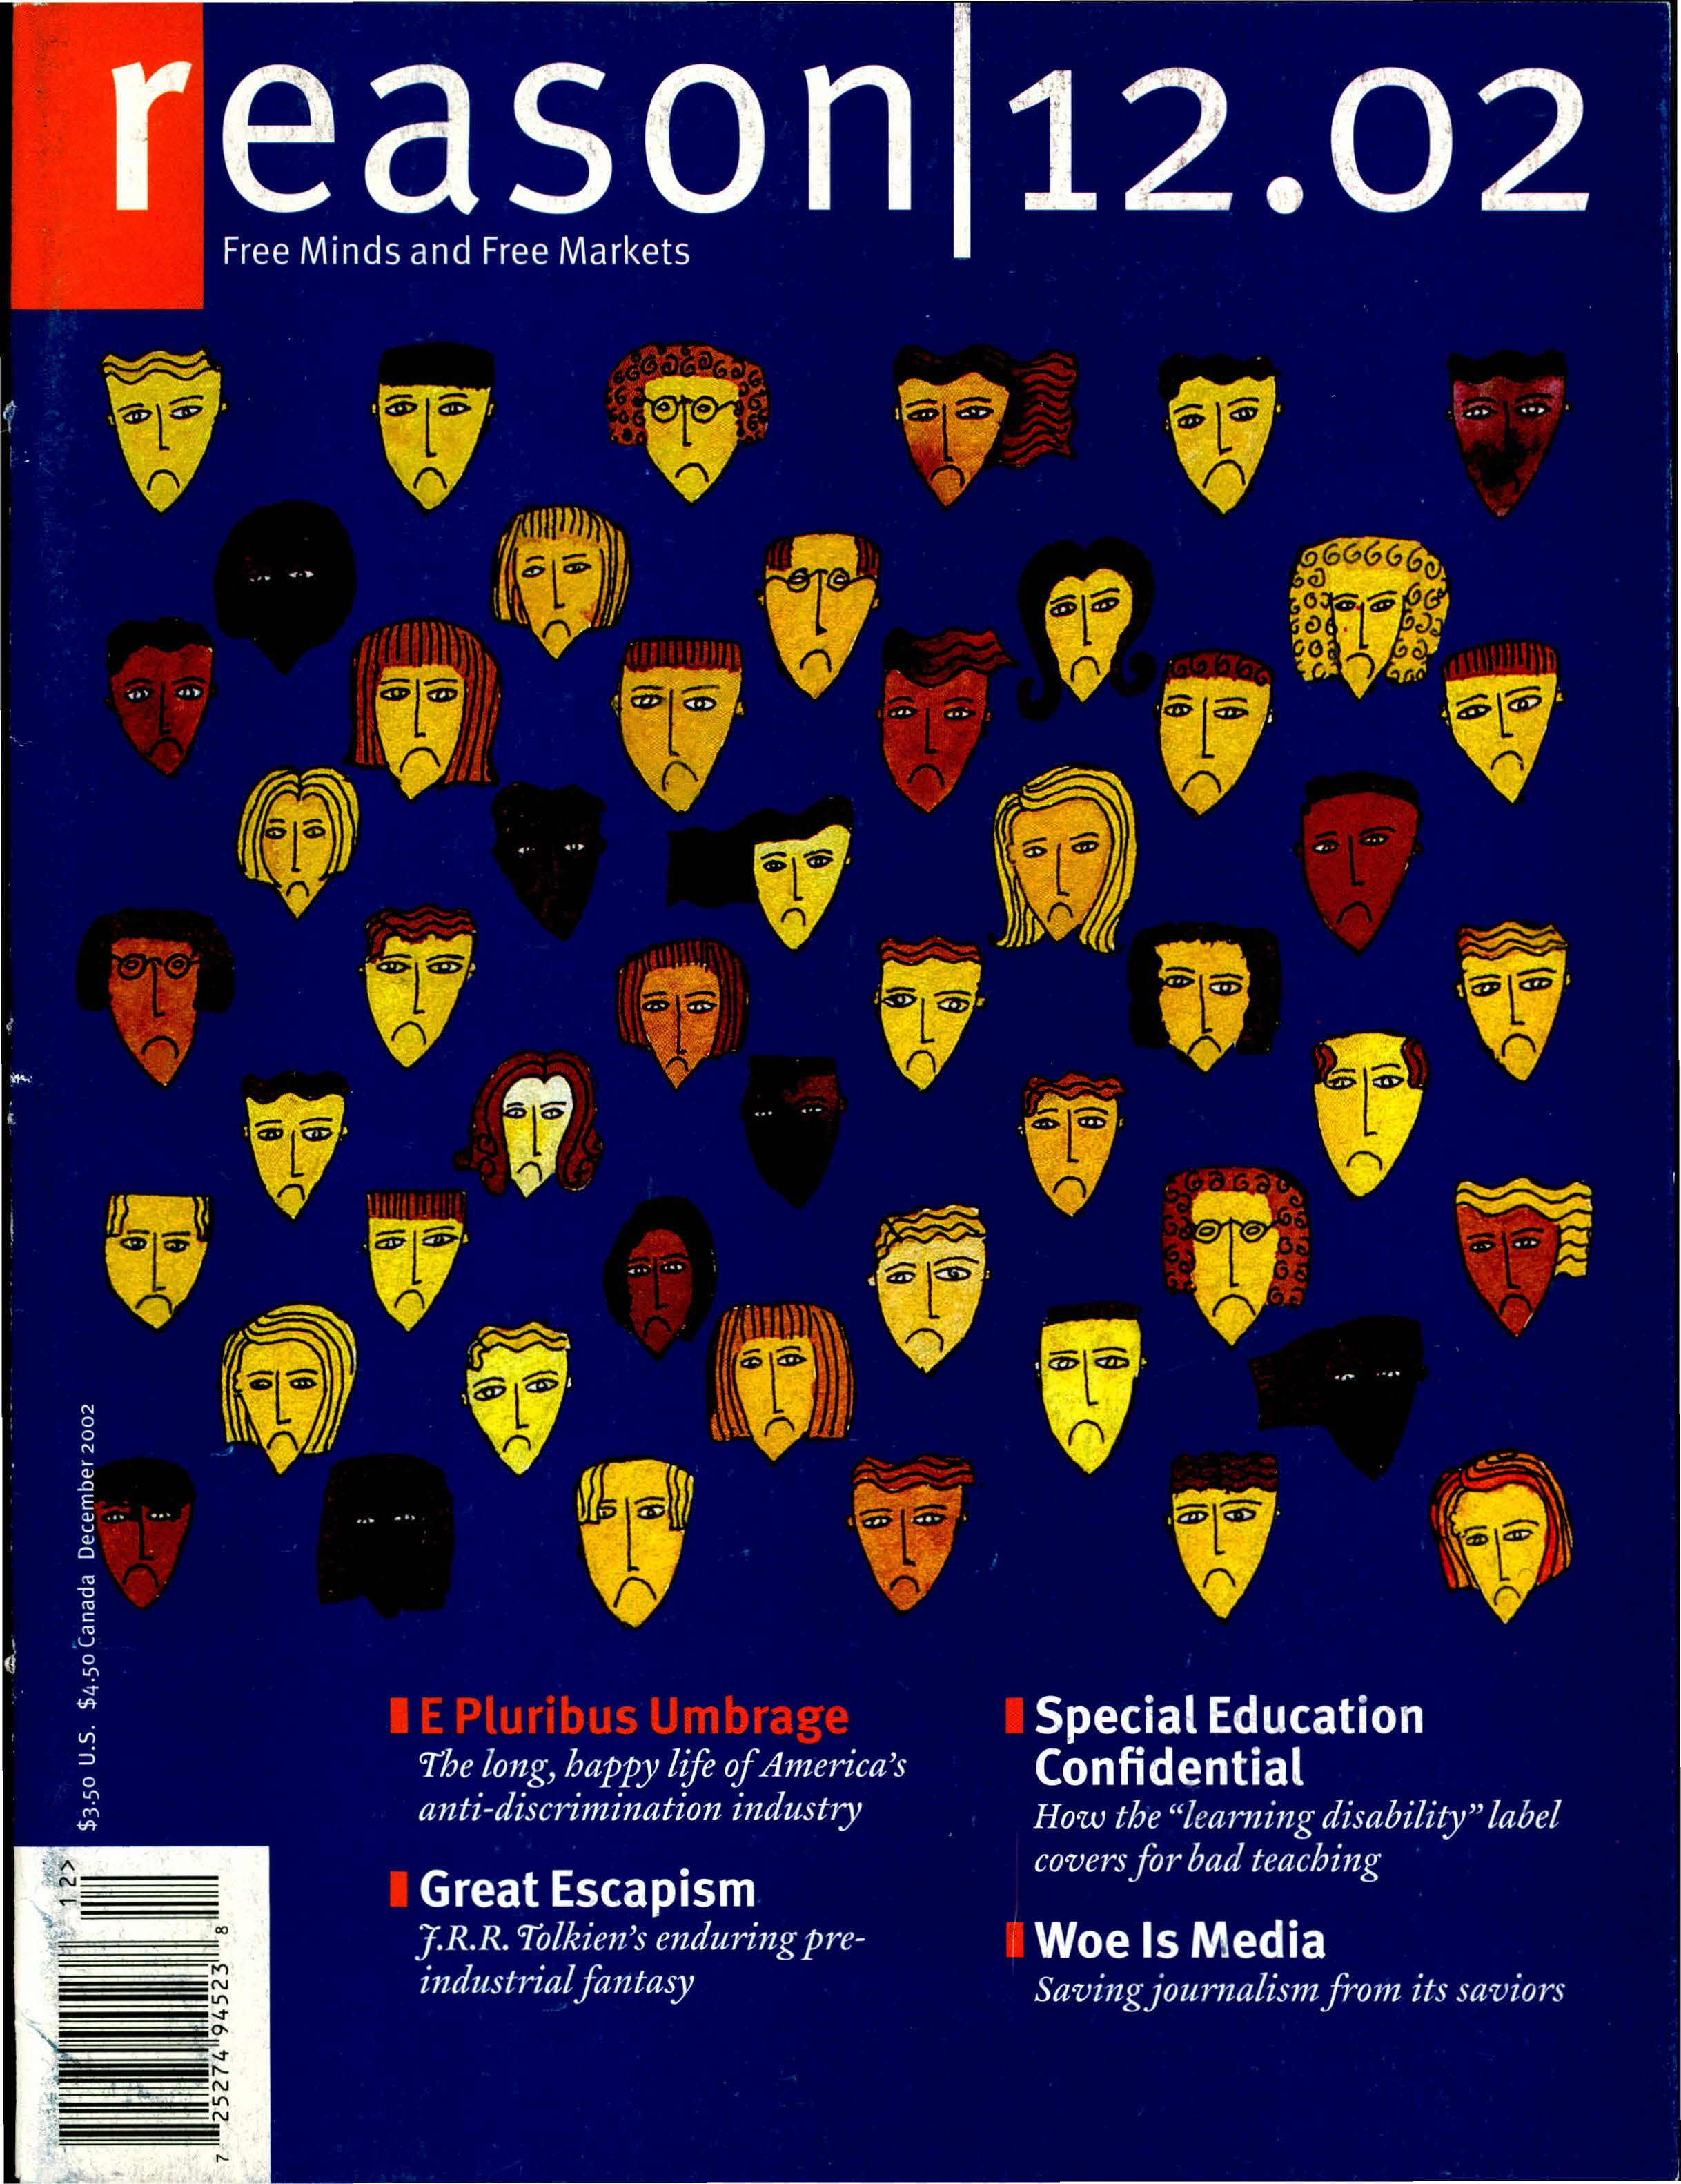 Reason Magazine, December 2002 cover image